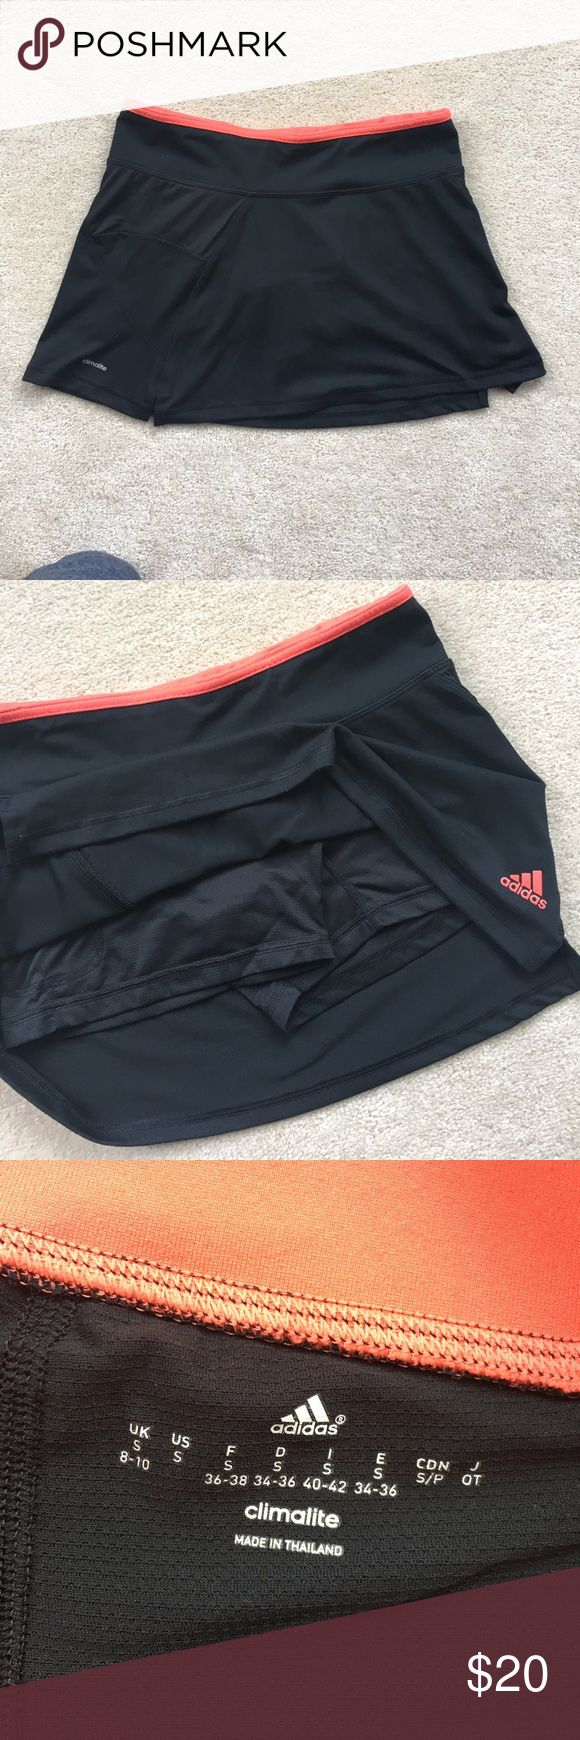 Adidas Coral/Black tennis skirt (shorts lining) Adidas tennis skirt. Worn once. Great condition. Cute black skirt with coral colored linen bag and trim. adidas Skirts